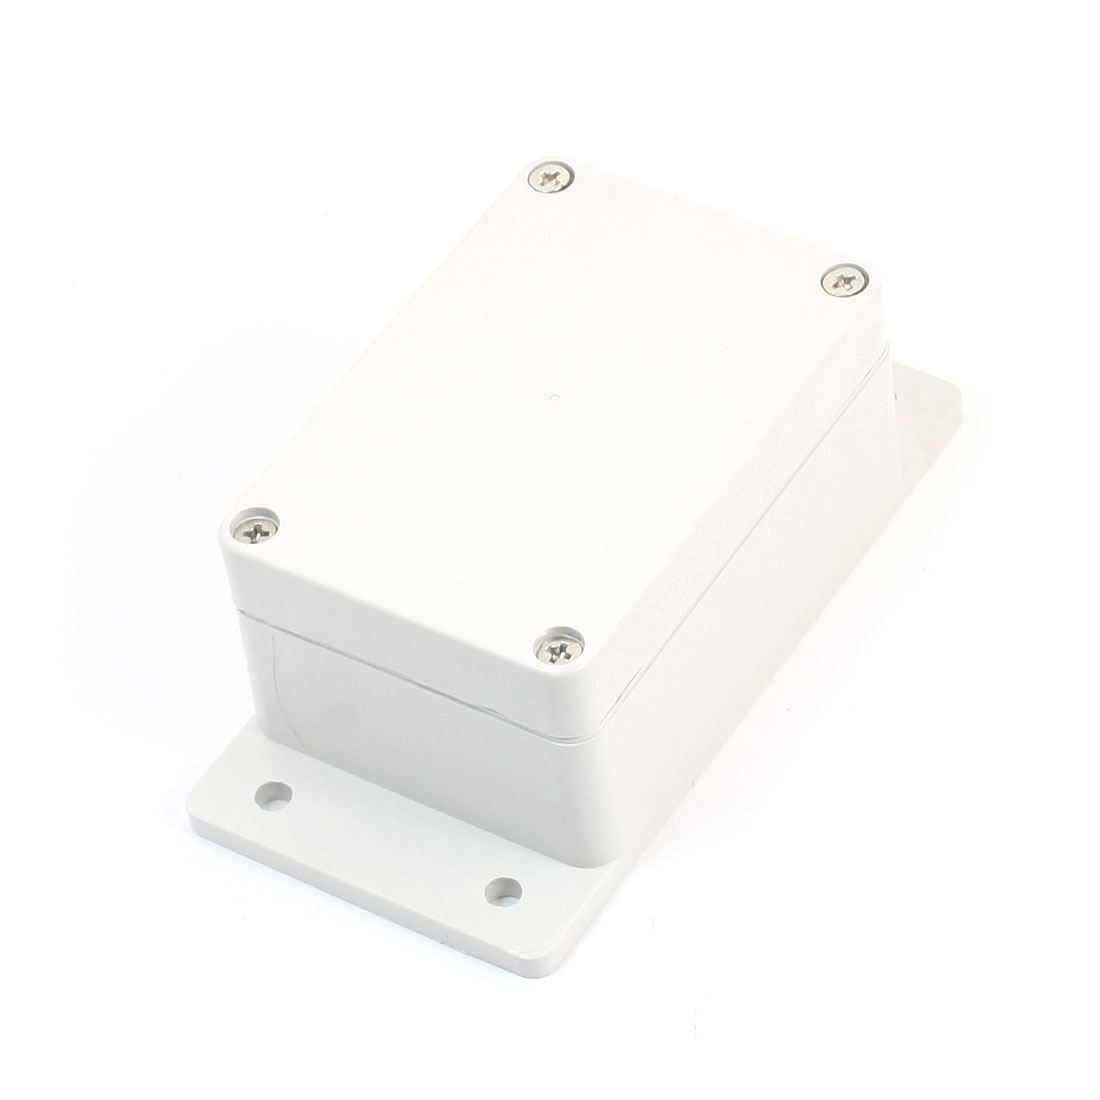 Surface Mounting Rectangle Waterproof Plastic Sealed Electric Power Protector Junction Box Cover 140mm x 70mm x 50mm